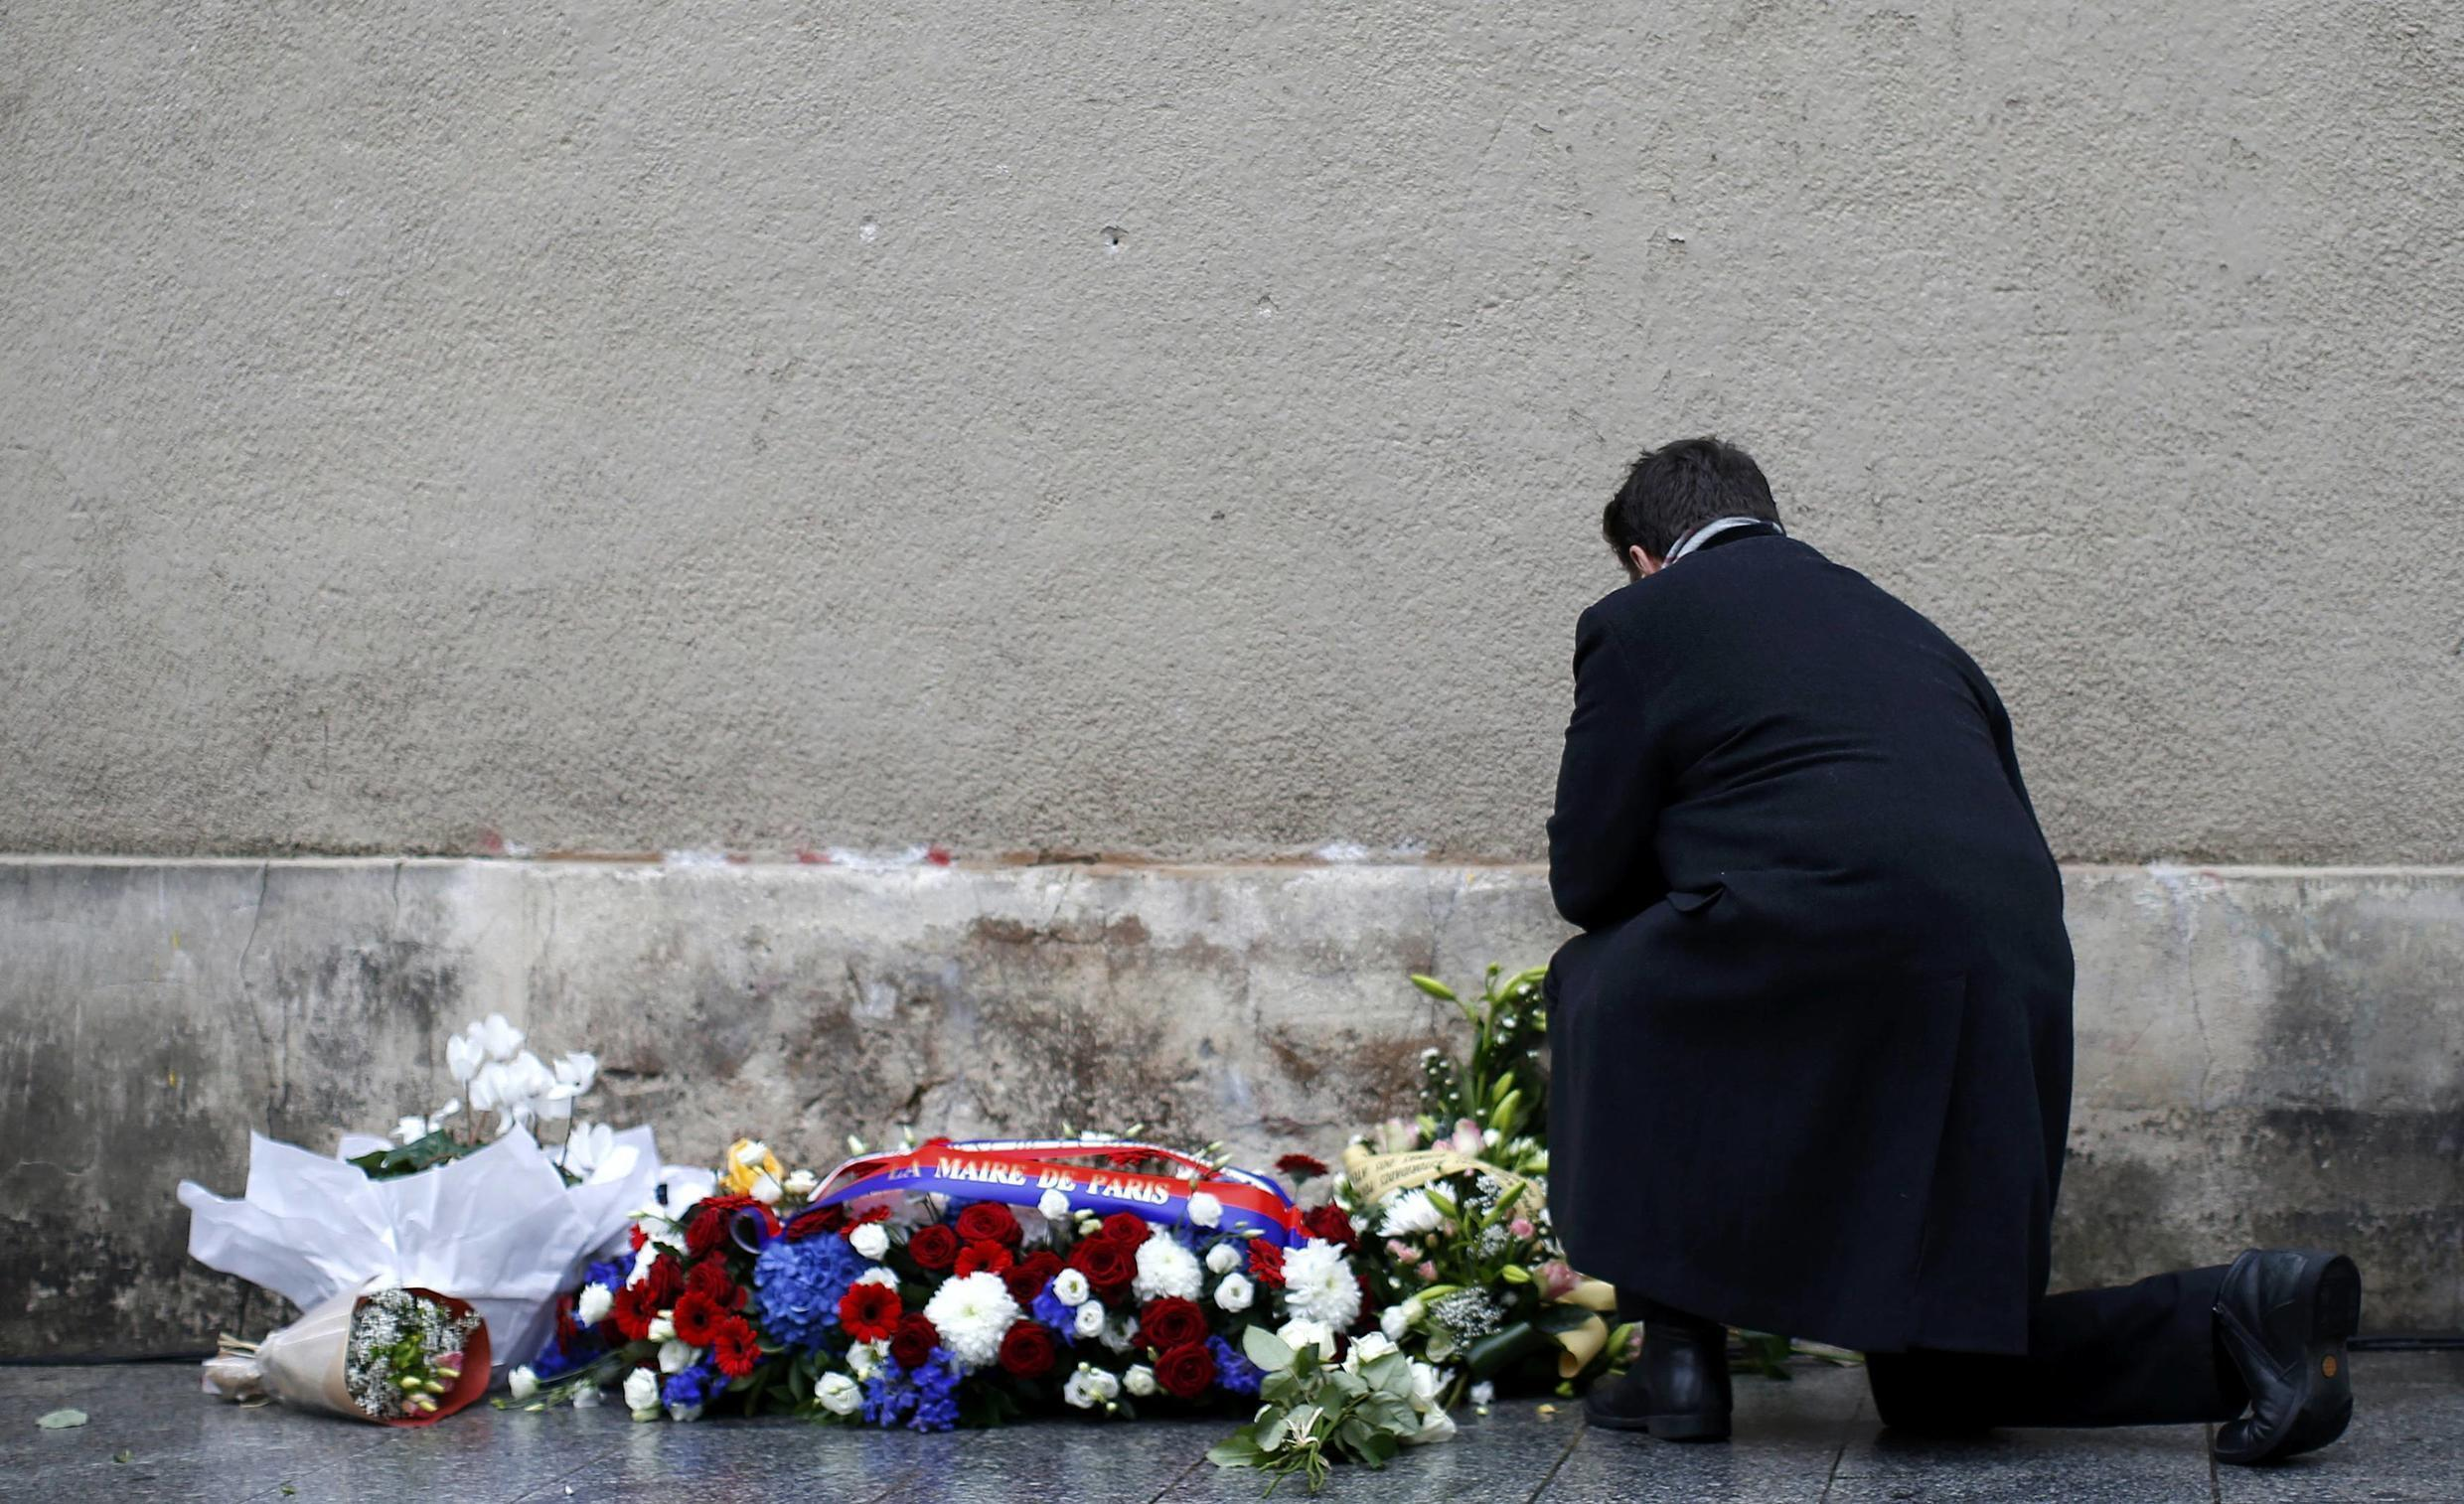 A ceremony in homage to the victims of the Paris attacks on their anniversary last year